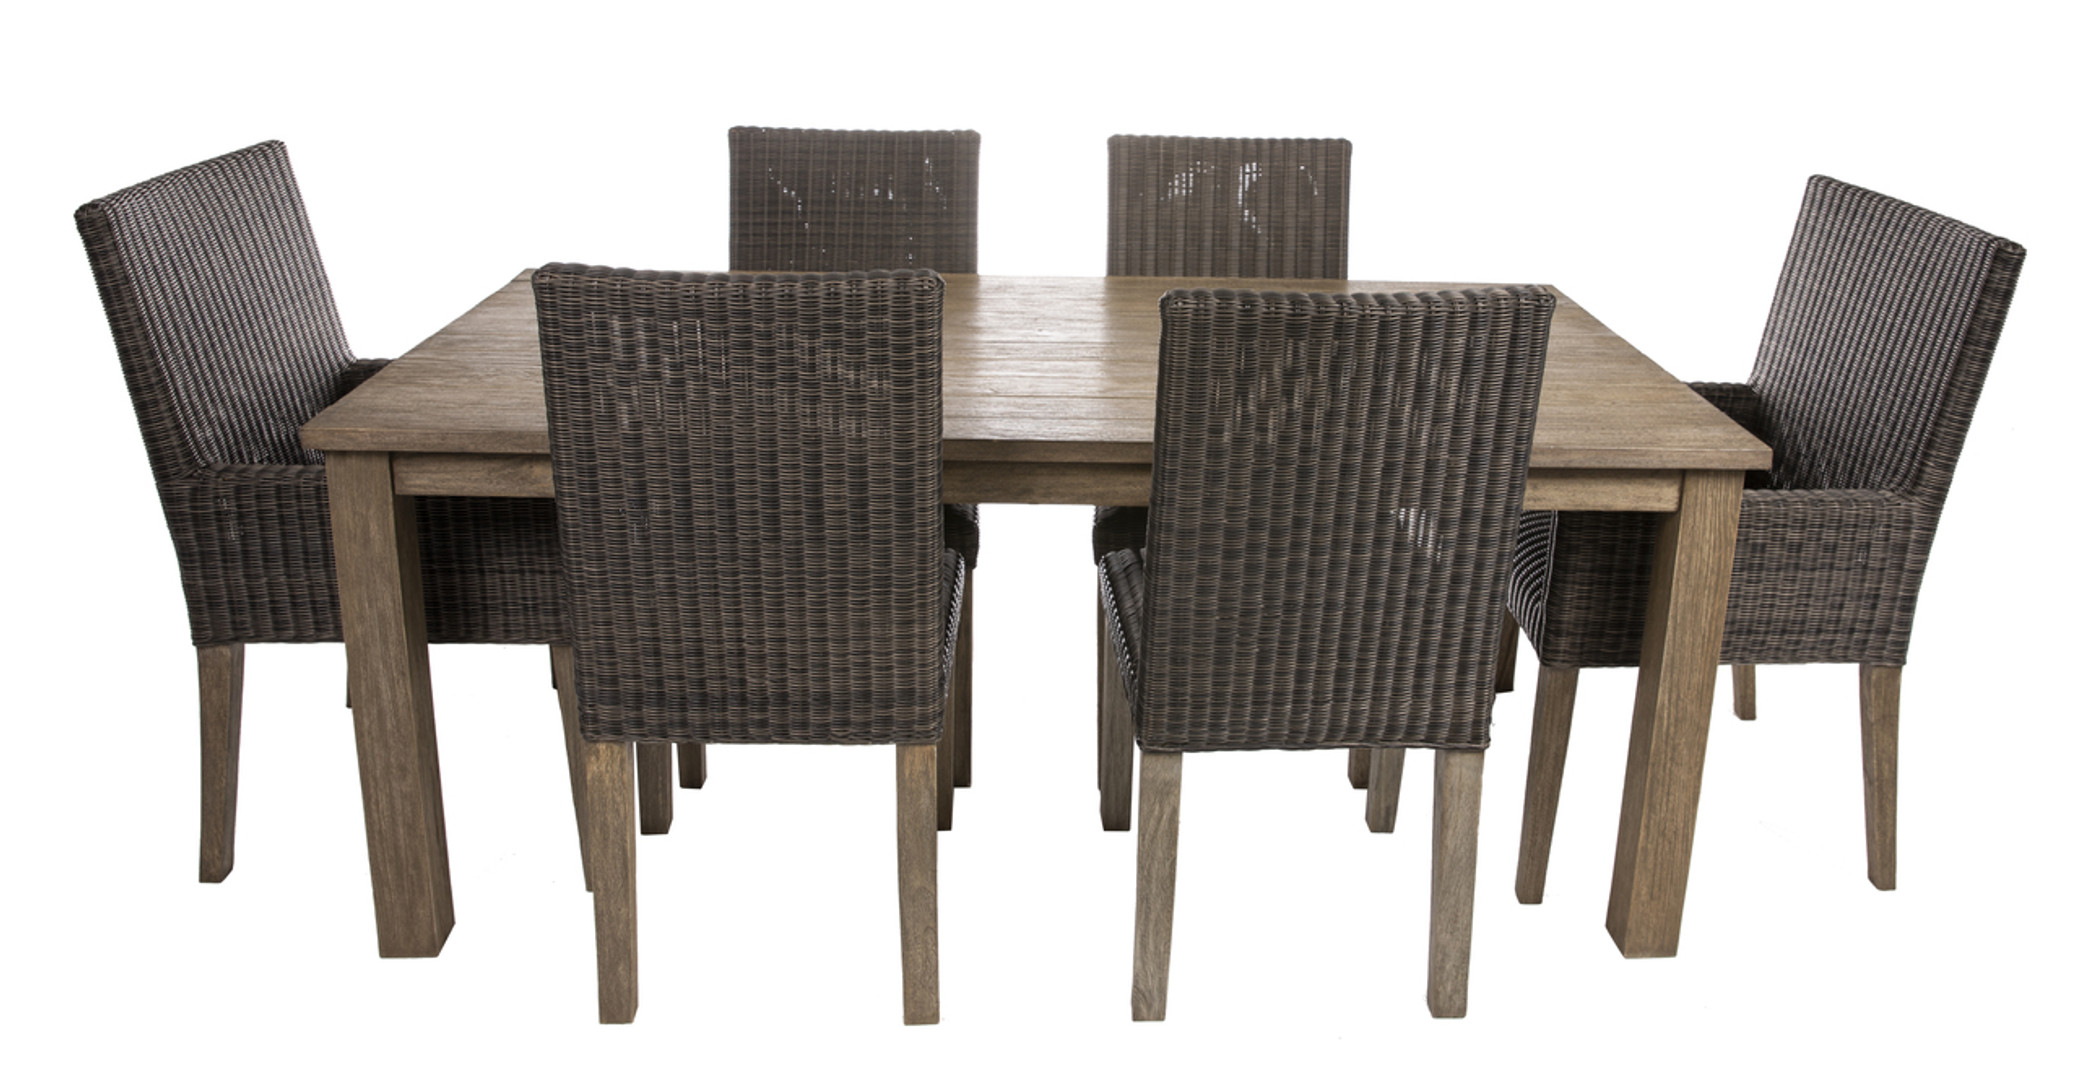 Furniture Stores Canberra Erwin And Sons Canberra 7 Pc Dining Teak Dining Set